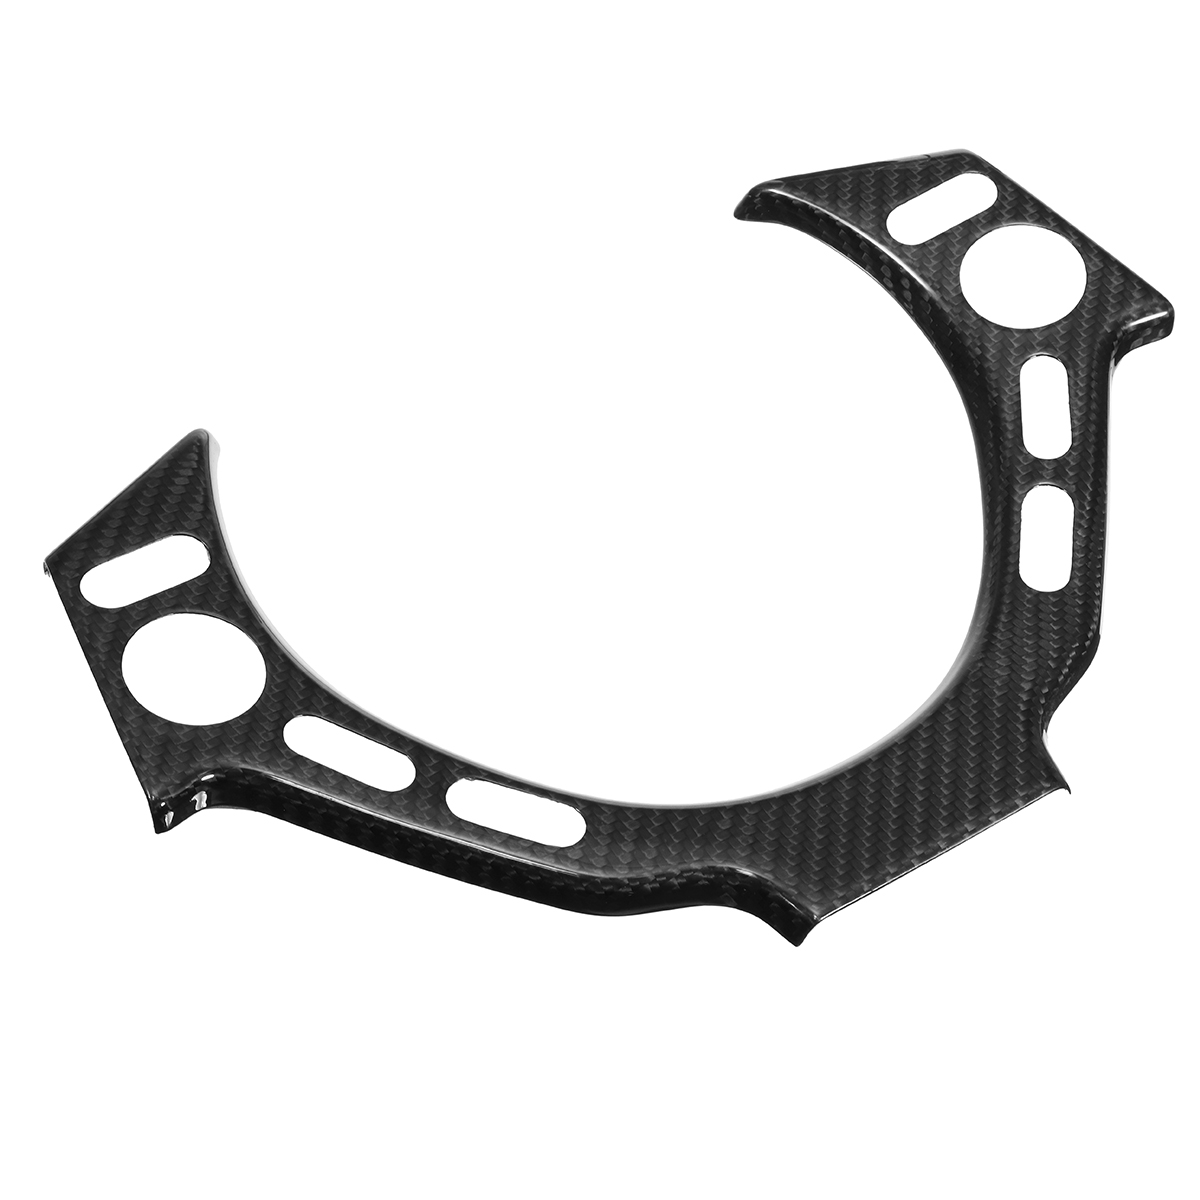 Glossy Carbon Fiber Steering Wheel Center Trim Cover Steering Wheel Center Protector for NISSAN for GTR